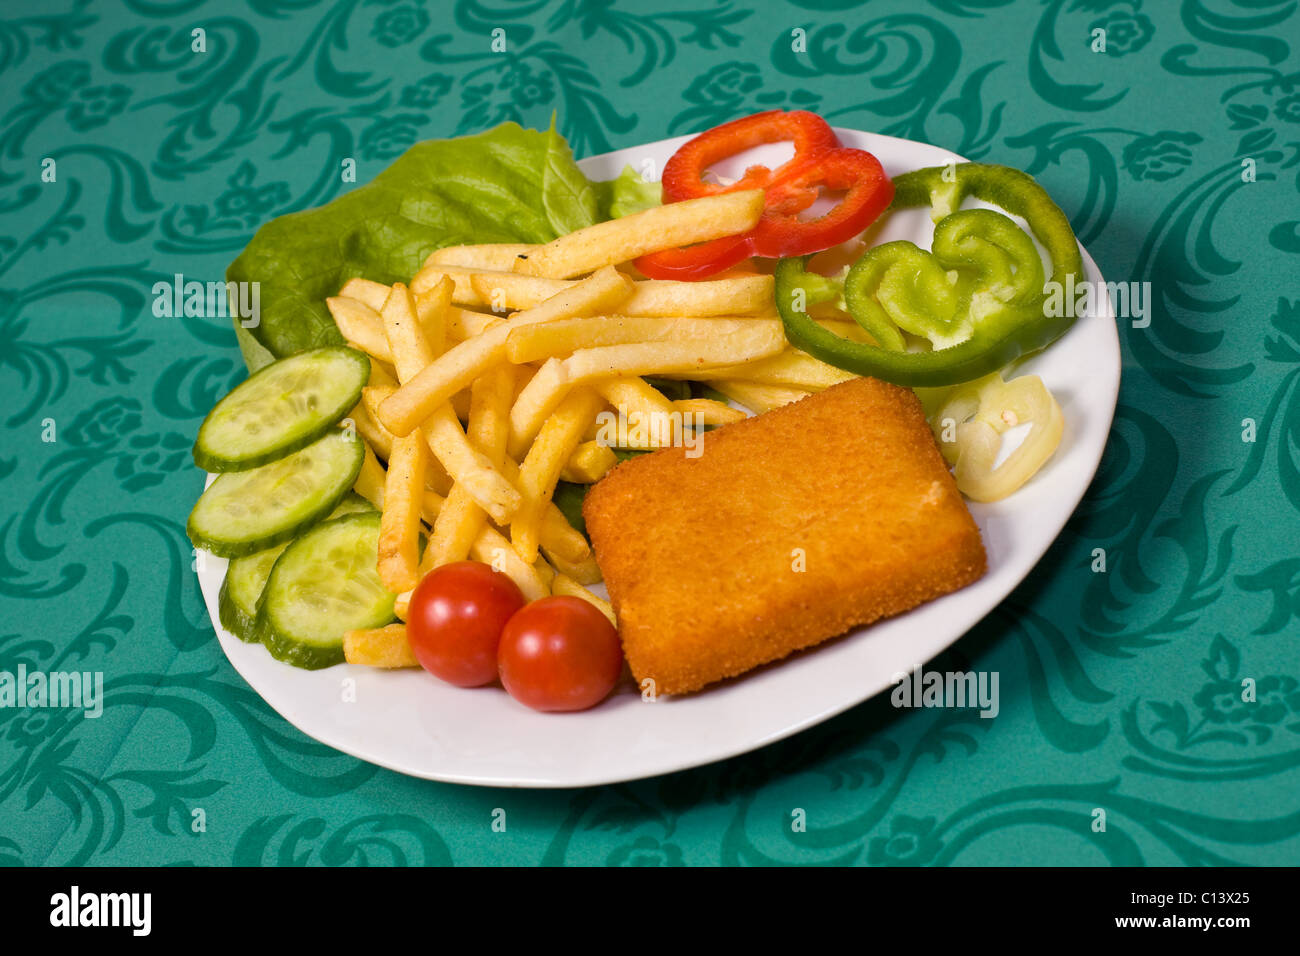 Fried breaded cheese steak with french fries and vegetable - Stock Image